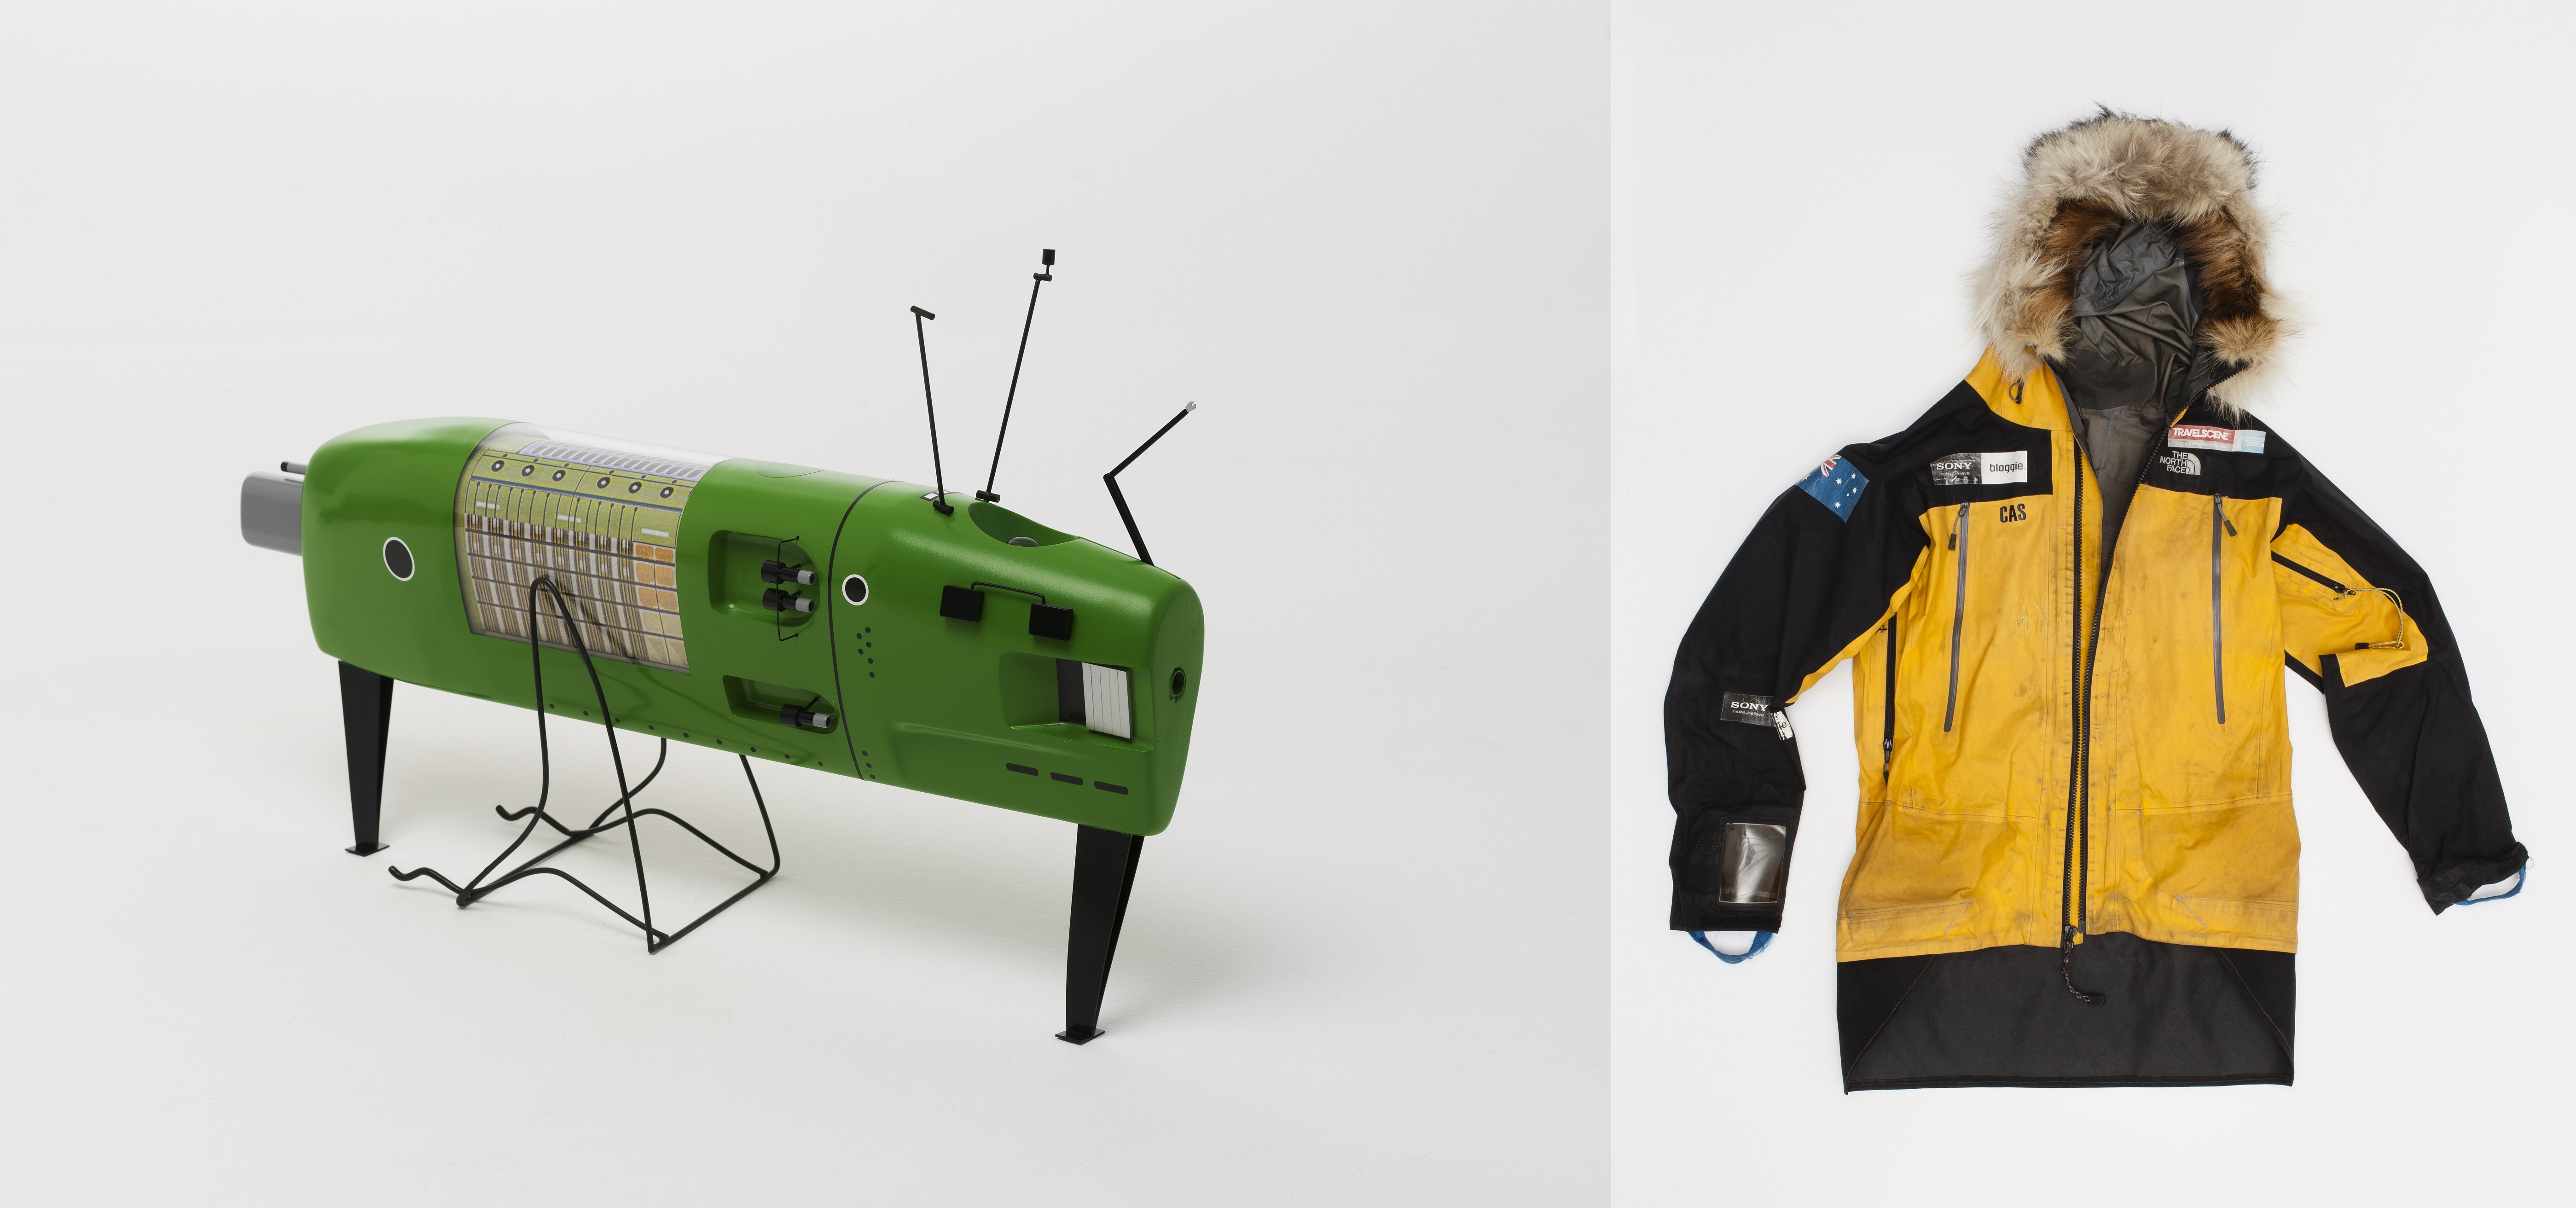 Two images side by side. Left: Model of a green submarine. There are various panels and instruments on the exterior of the vehicle. Right: Black and yellow weatherproof jacket with fur around the hood. There is an Australian flag on one sleeve and the name 'CAS' written on the chest.